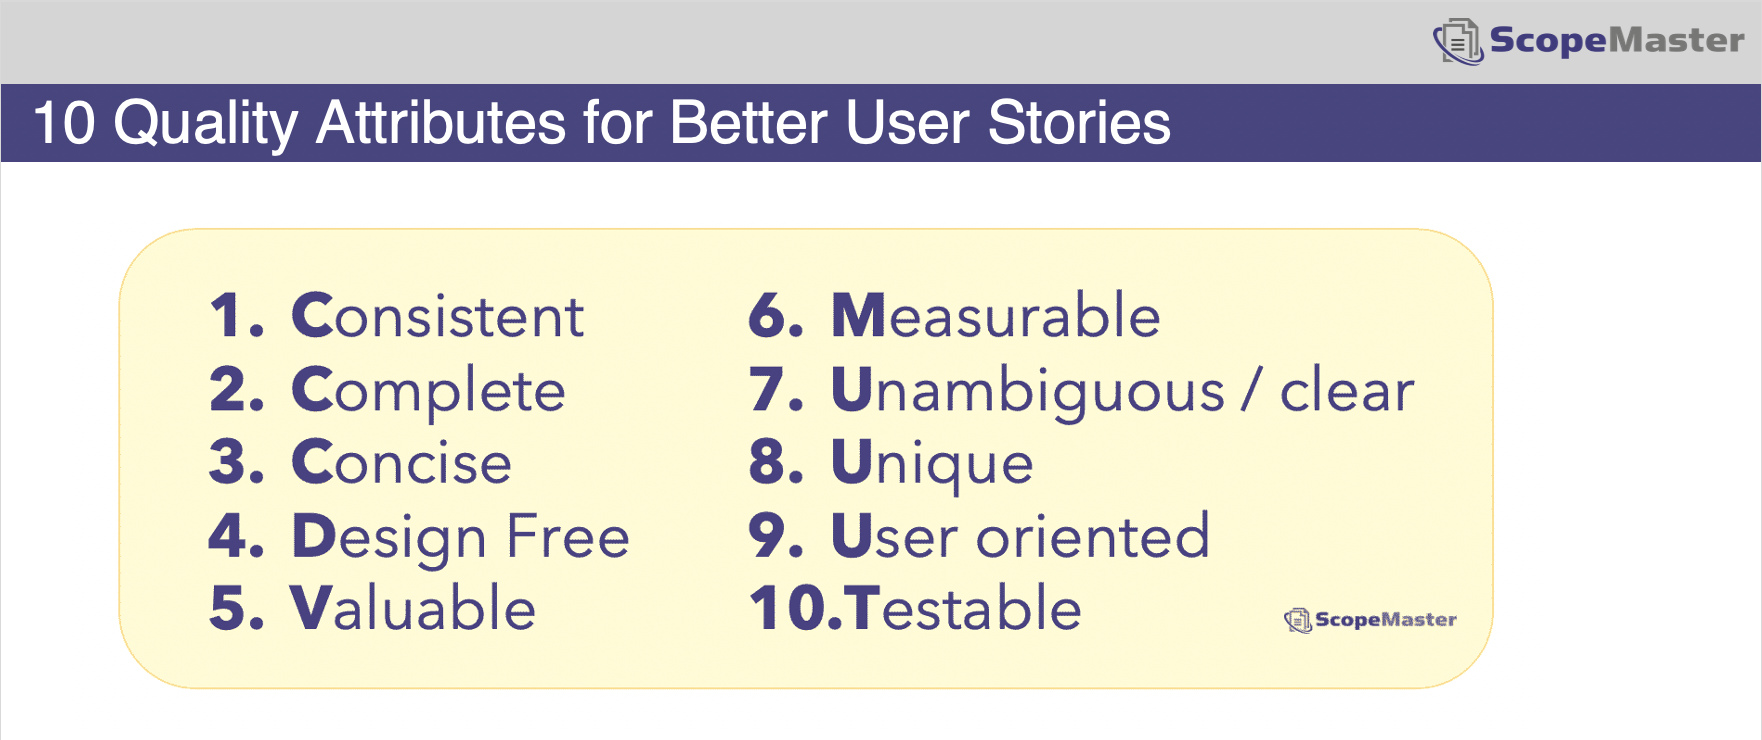 10 attributes for better user stories